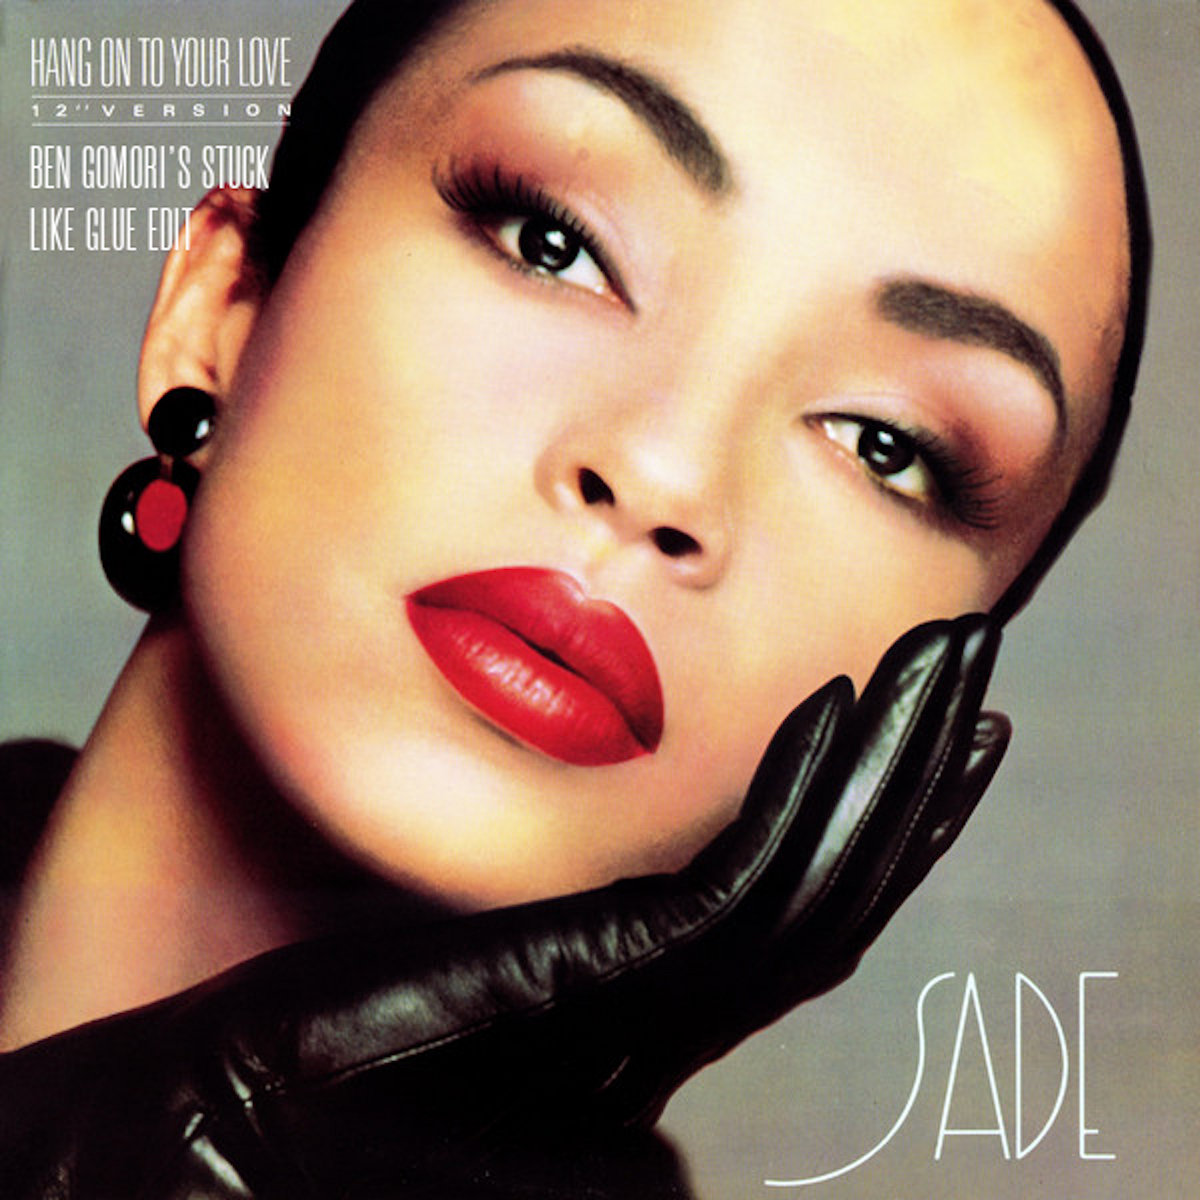 Sade - Hang On To Your Love (Ben Gomori Edit)